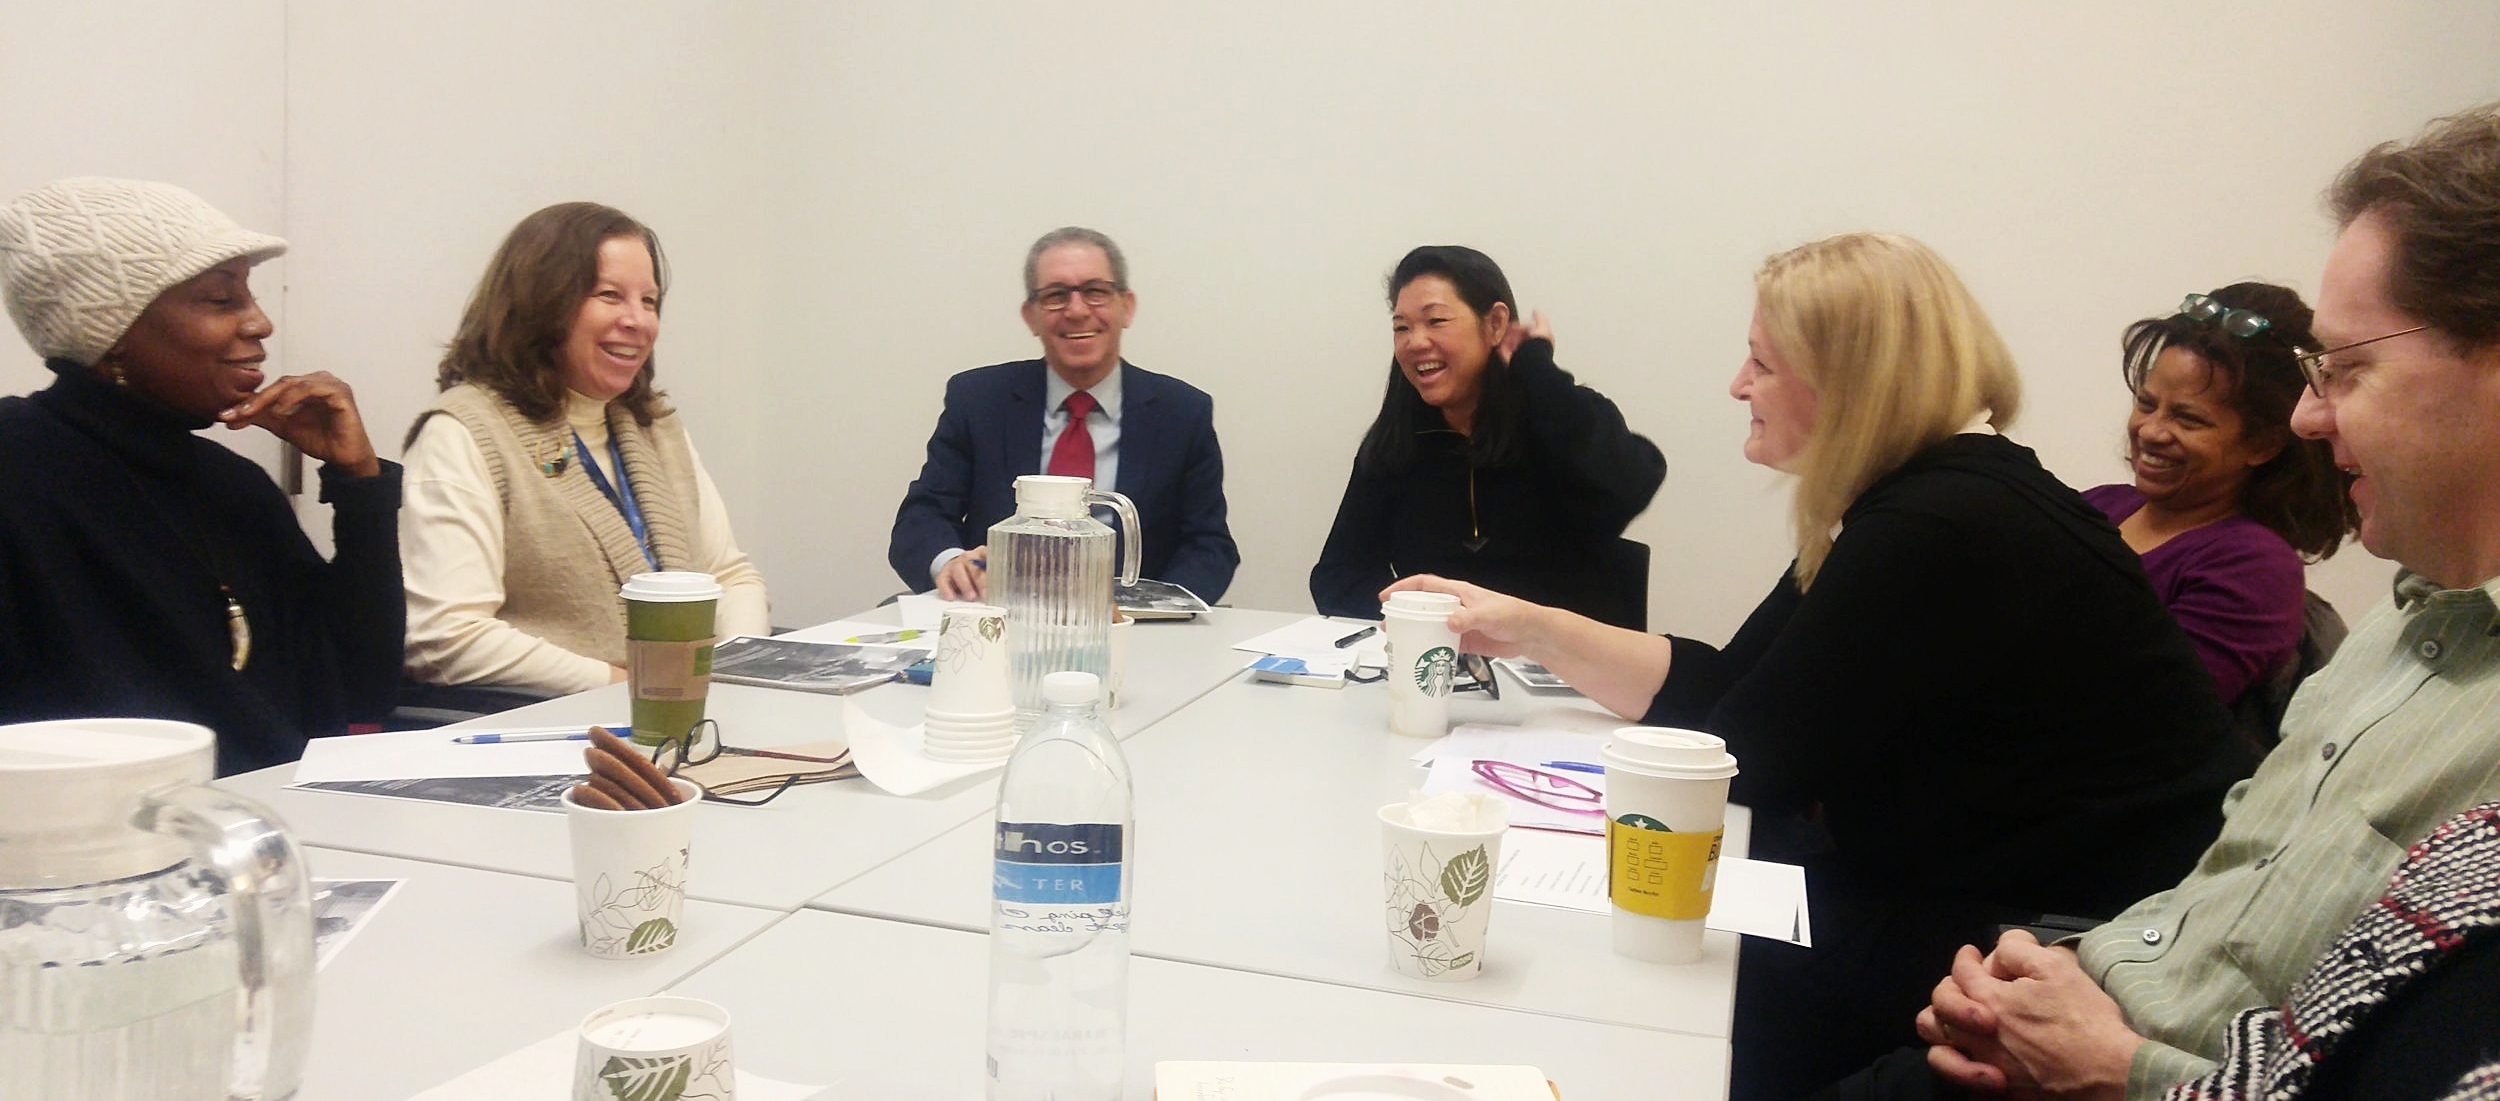 QCA Staff and partners discuss upcoming arts programming